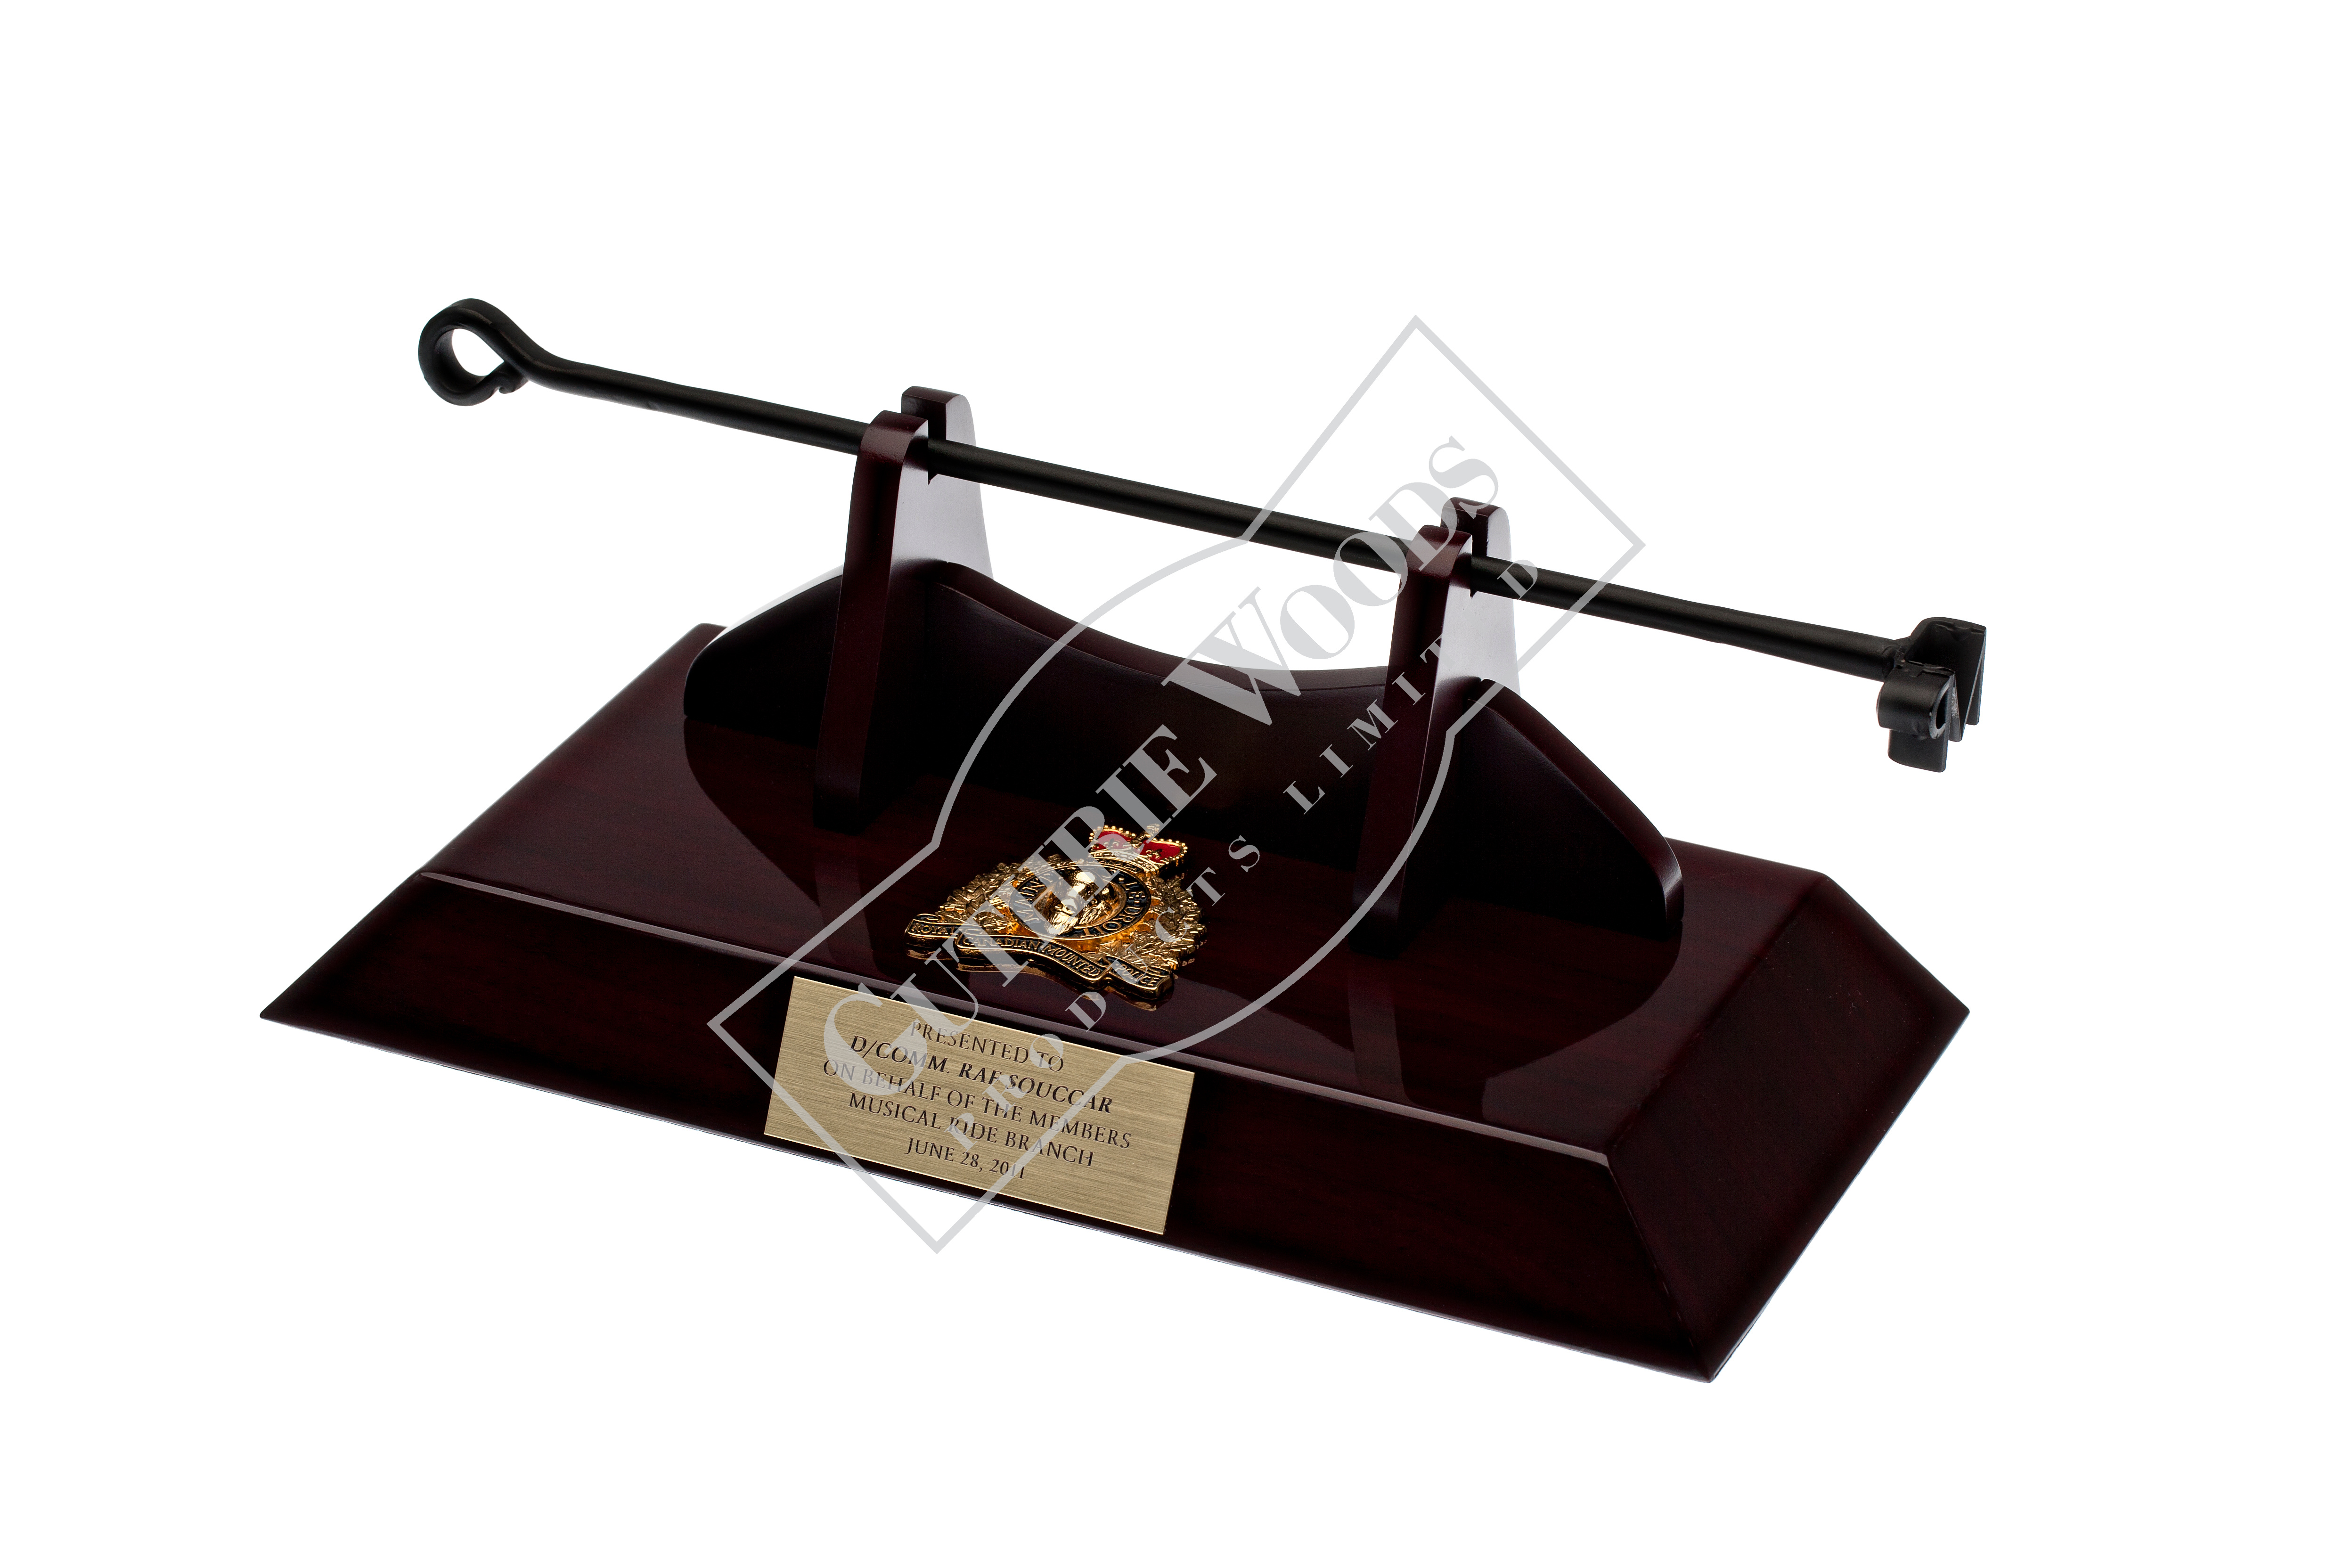 #R321-B-PR--Branding Iron_presentation mounted